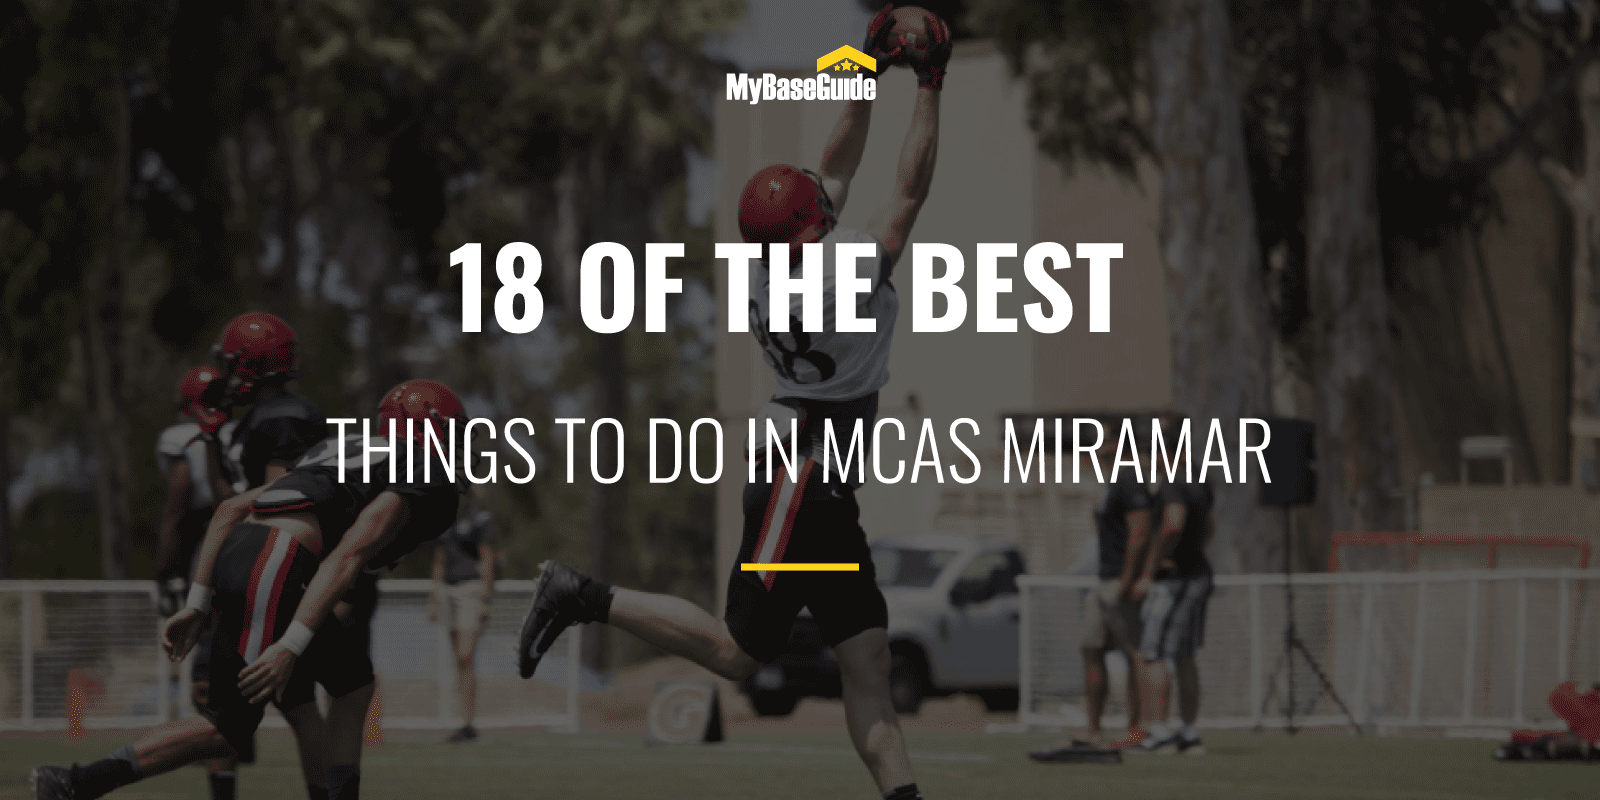 18 Of the Best Things to Do in MCAS Miramar